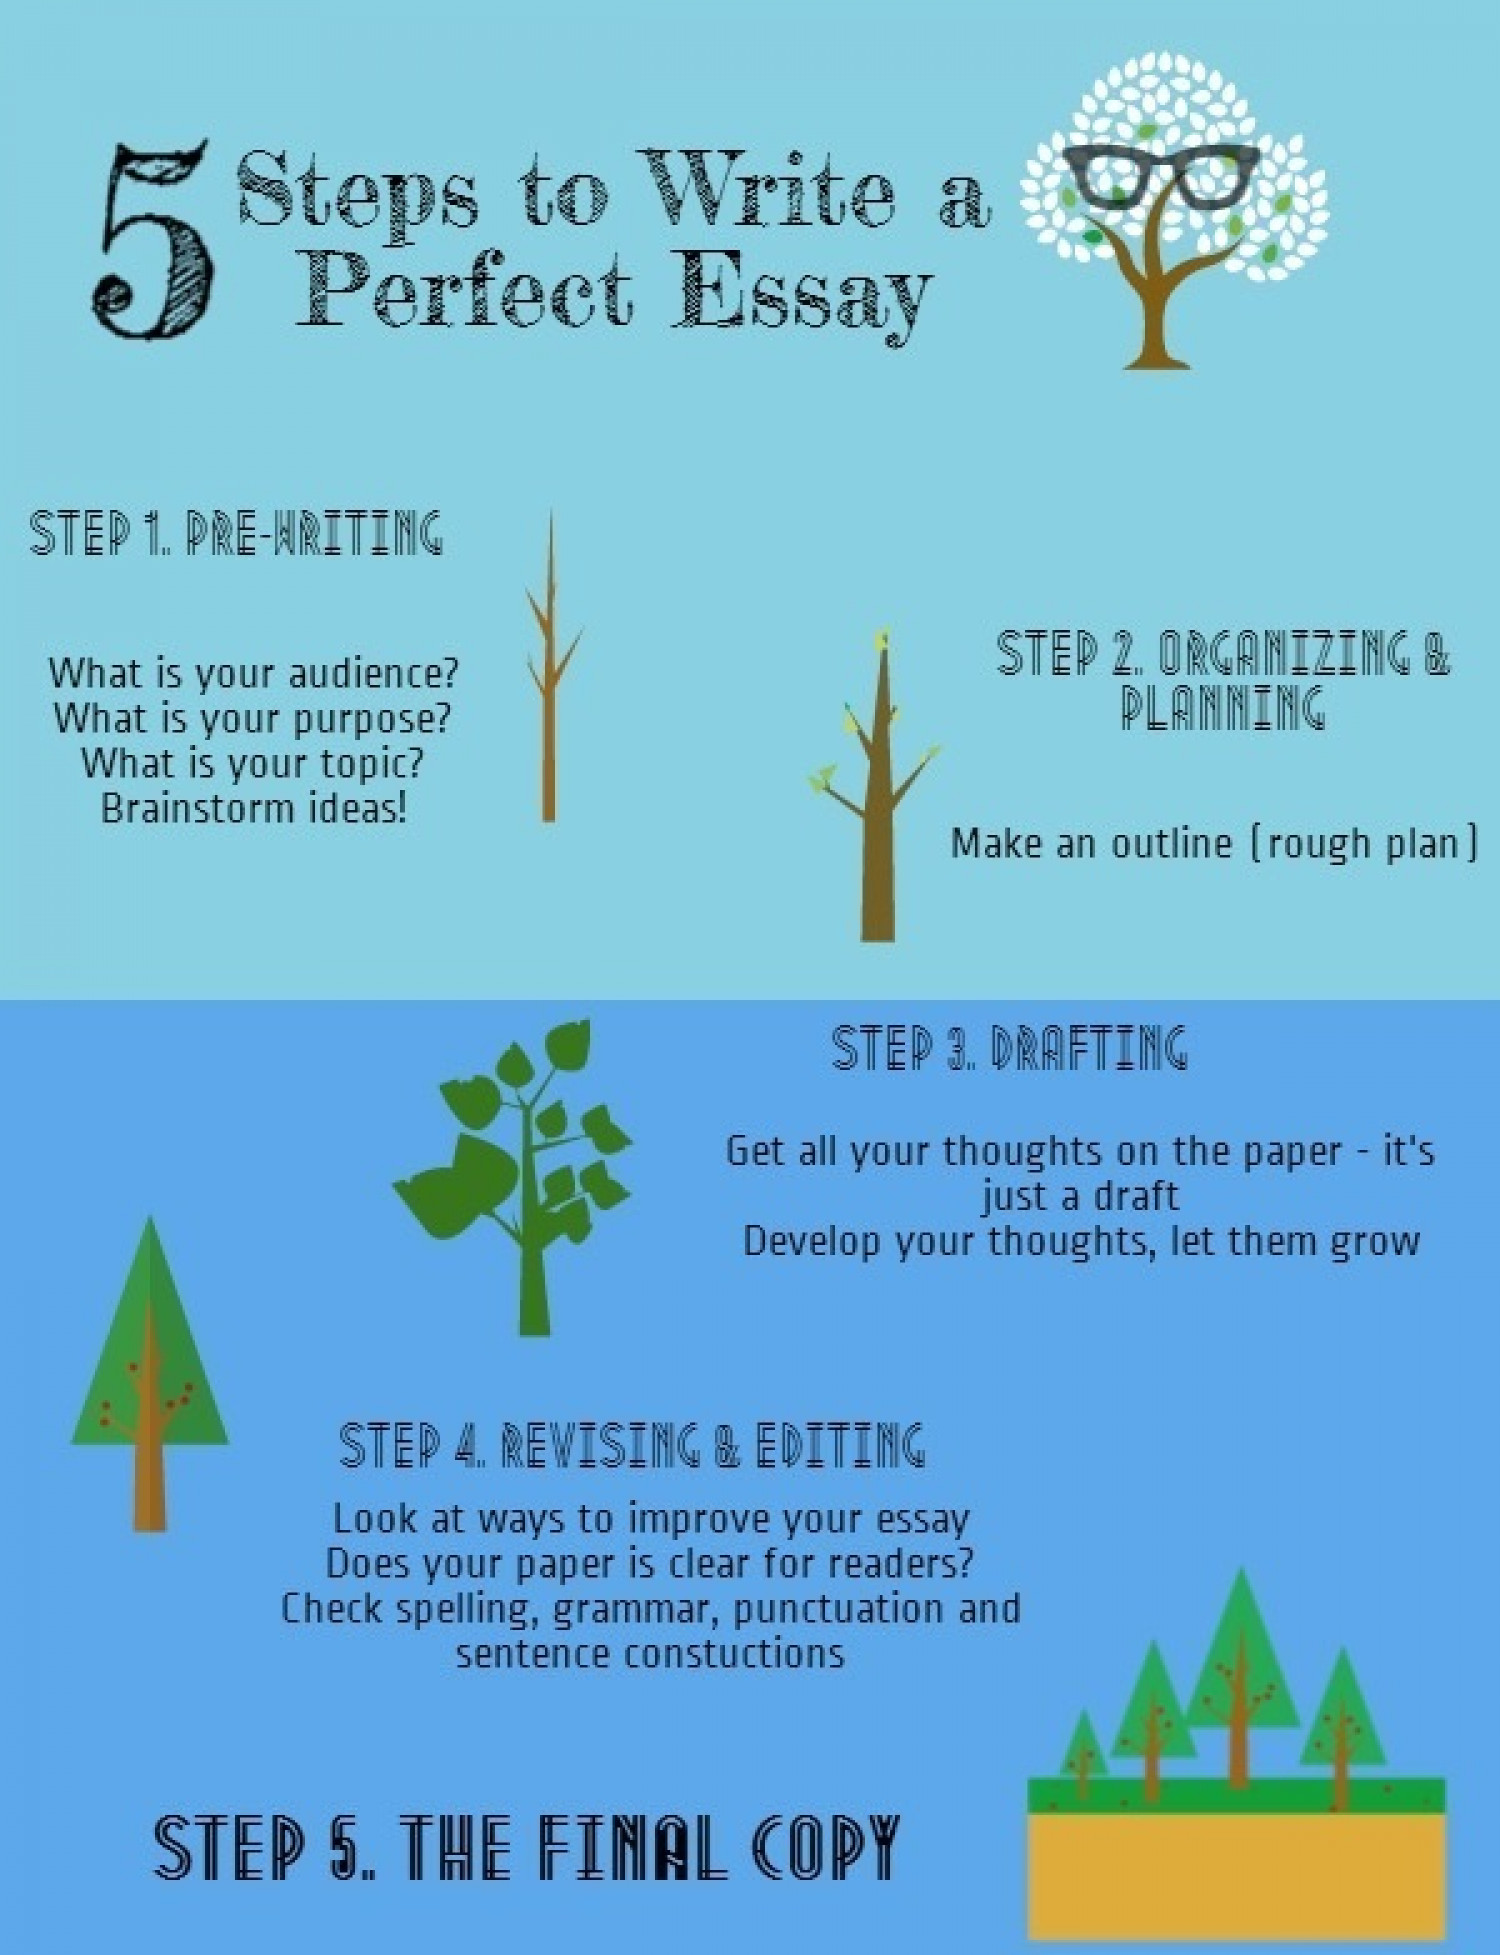 Essay-Writing Steps